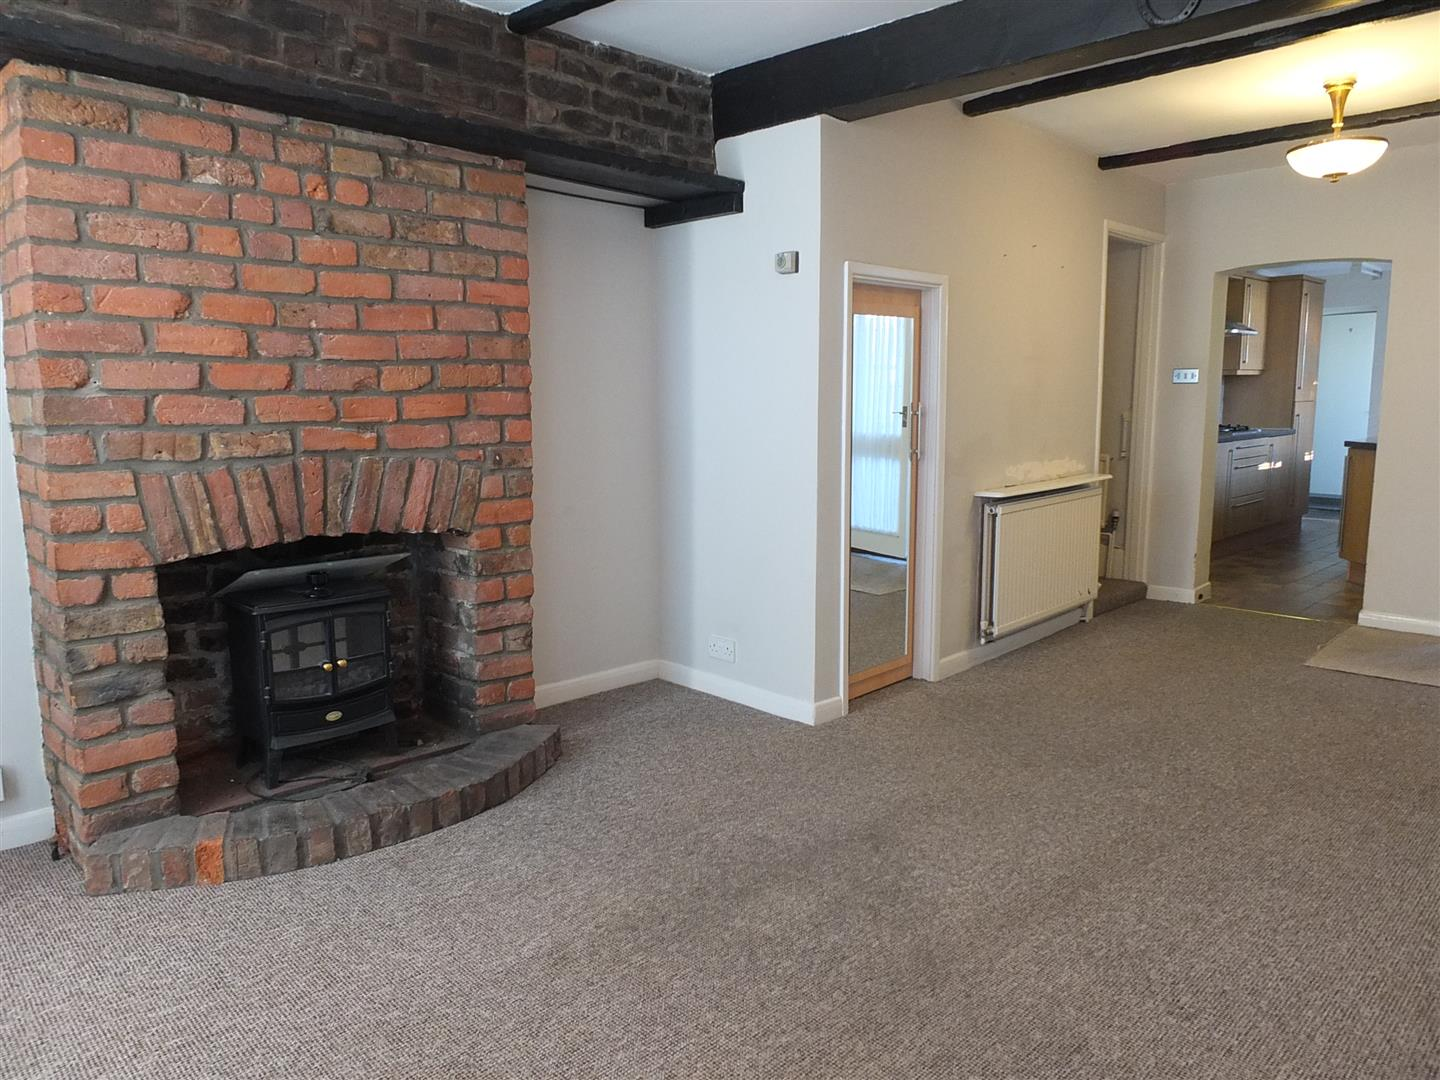 2 bed terraced house to rent in Sutton Bridge Spalding, PE12 9SX 2